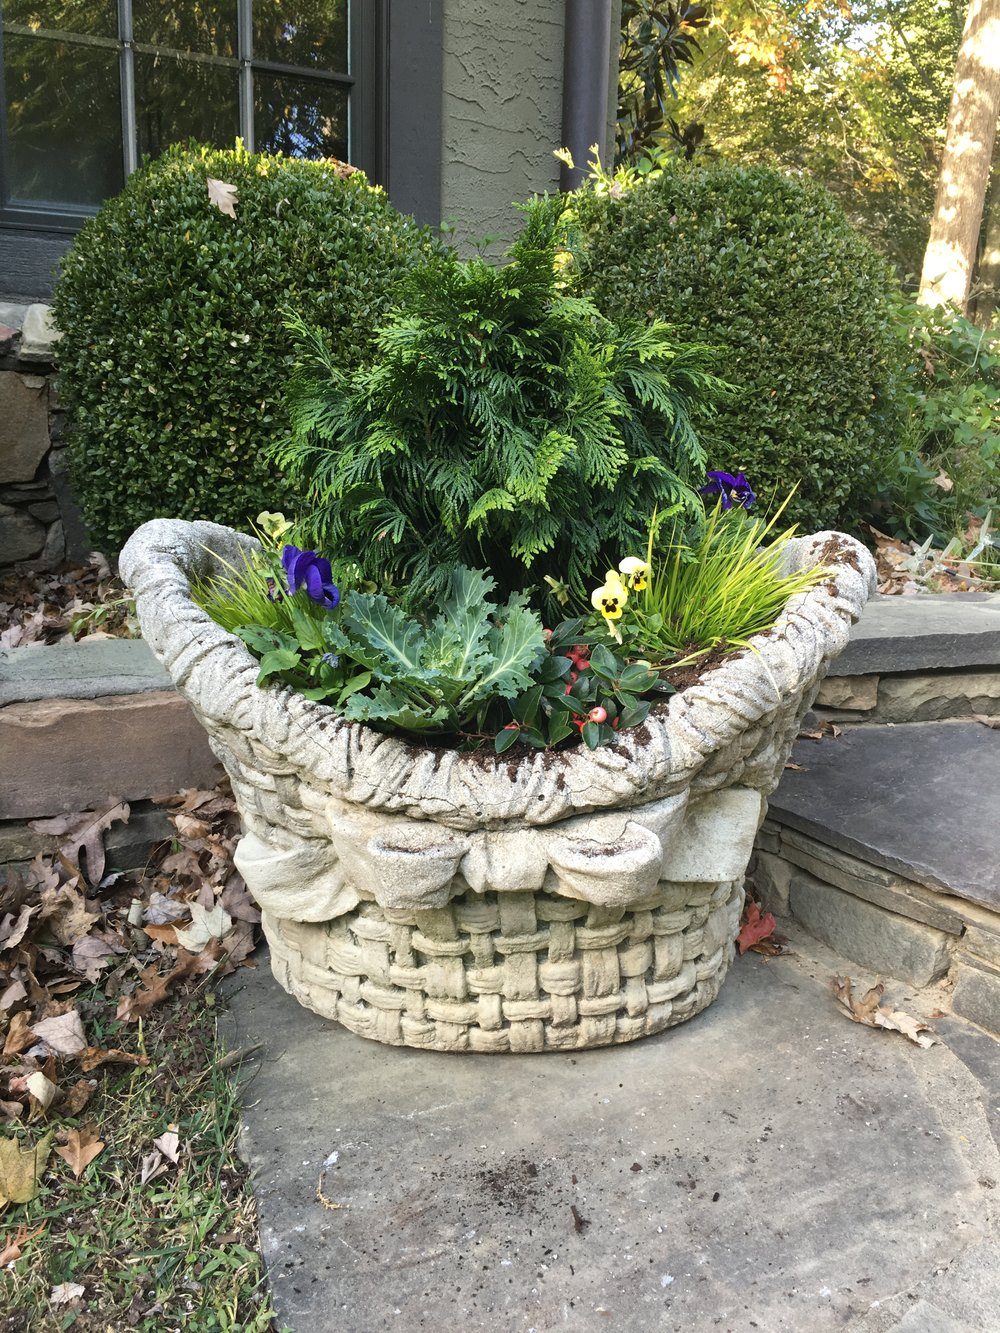 Concrete containers come in all styles from fun to traditional. They're easy to plant in winter, adding evergreen conifers and grasses with a few pansies for added color.